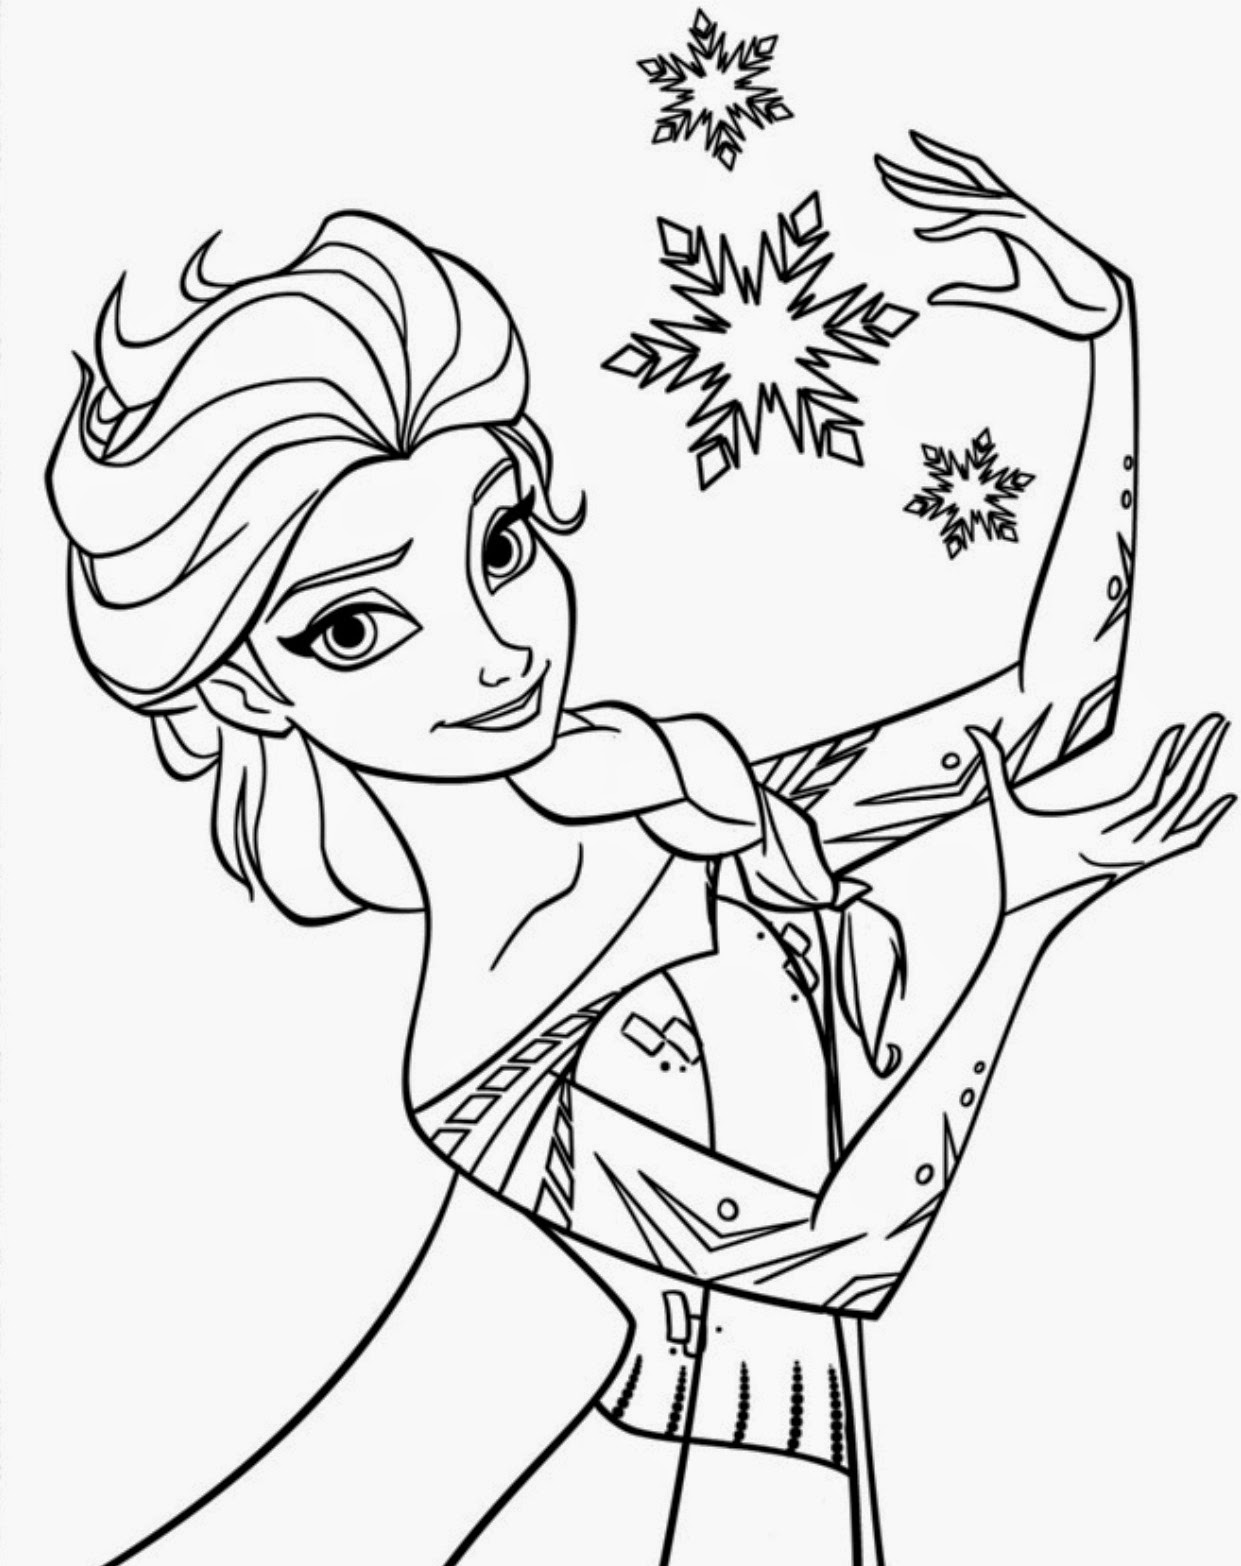 frozen colouring in sheets frozen 2 coloring pages elsa and anna coloring in colouring frozen sheets